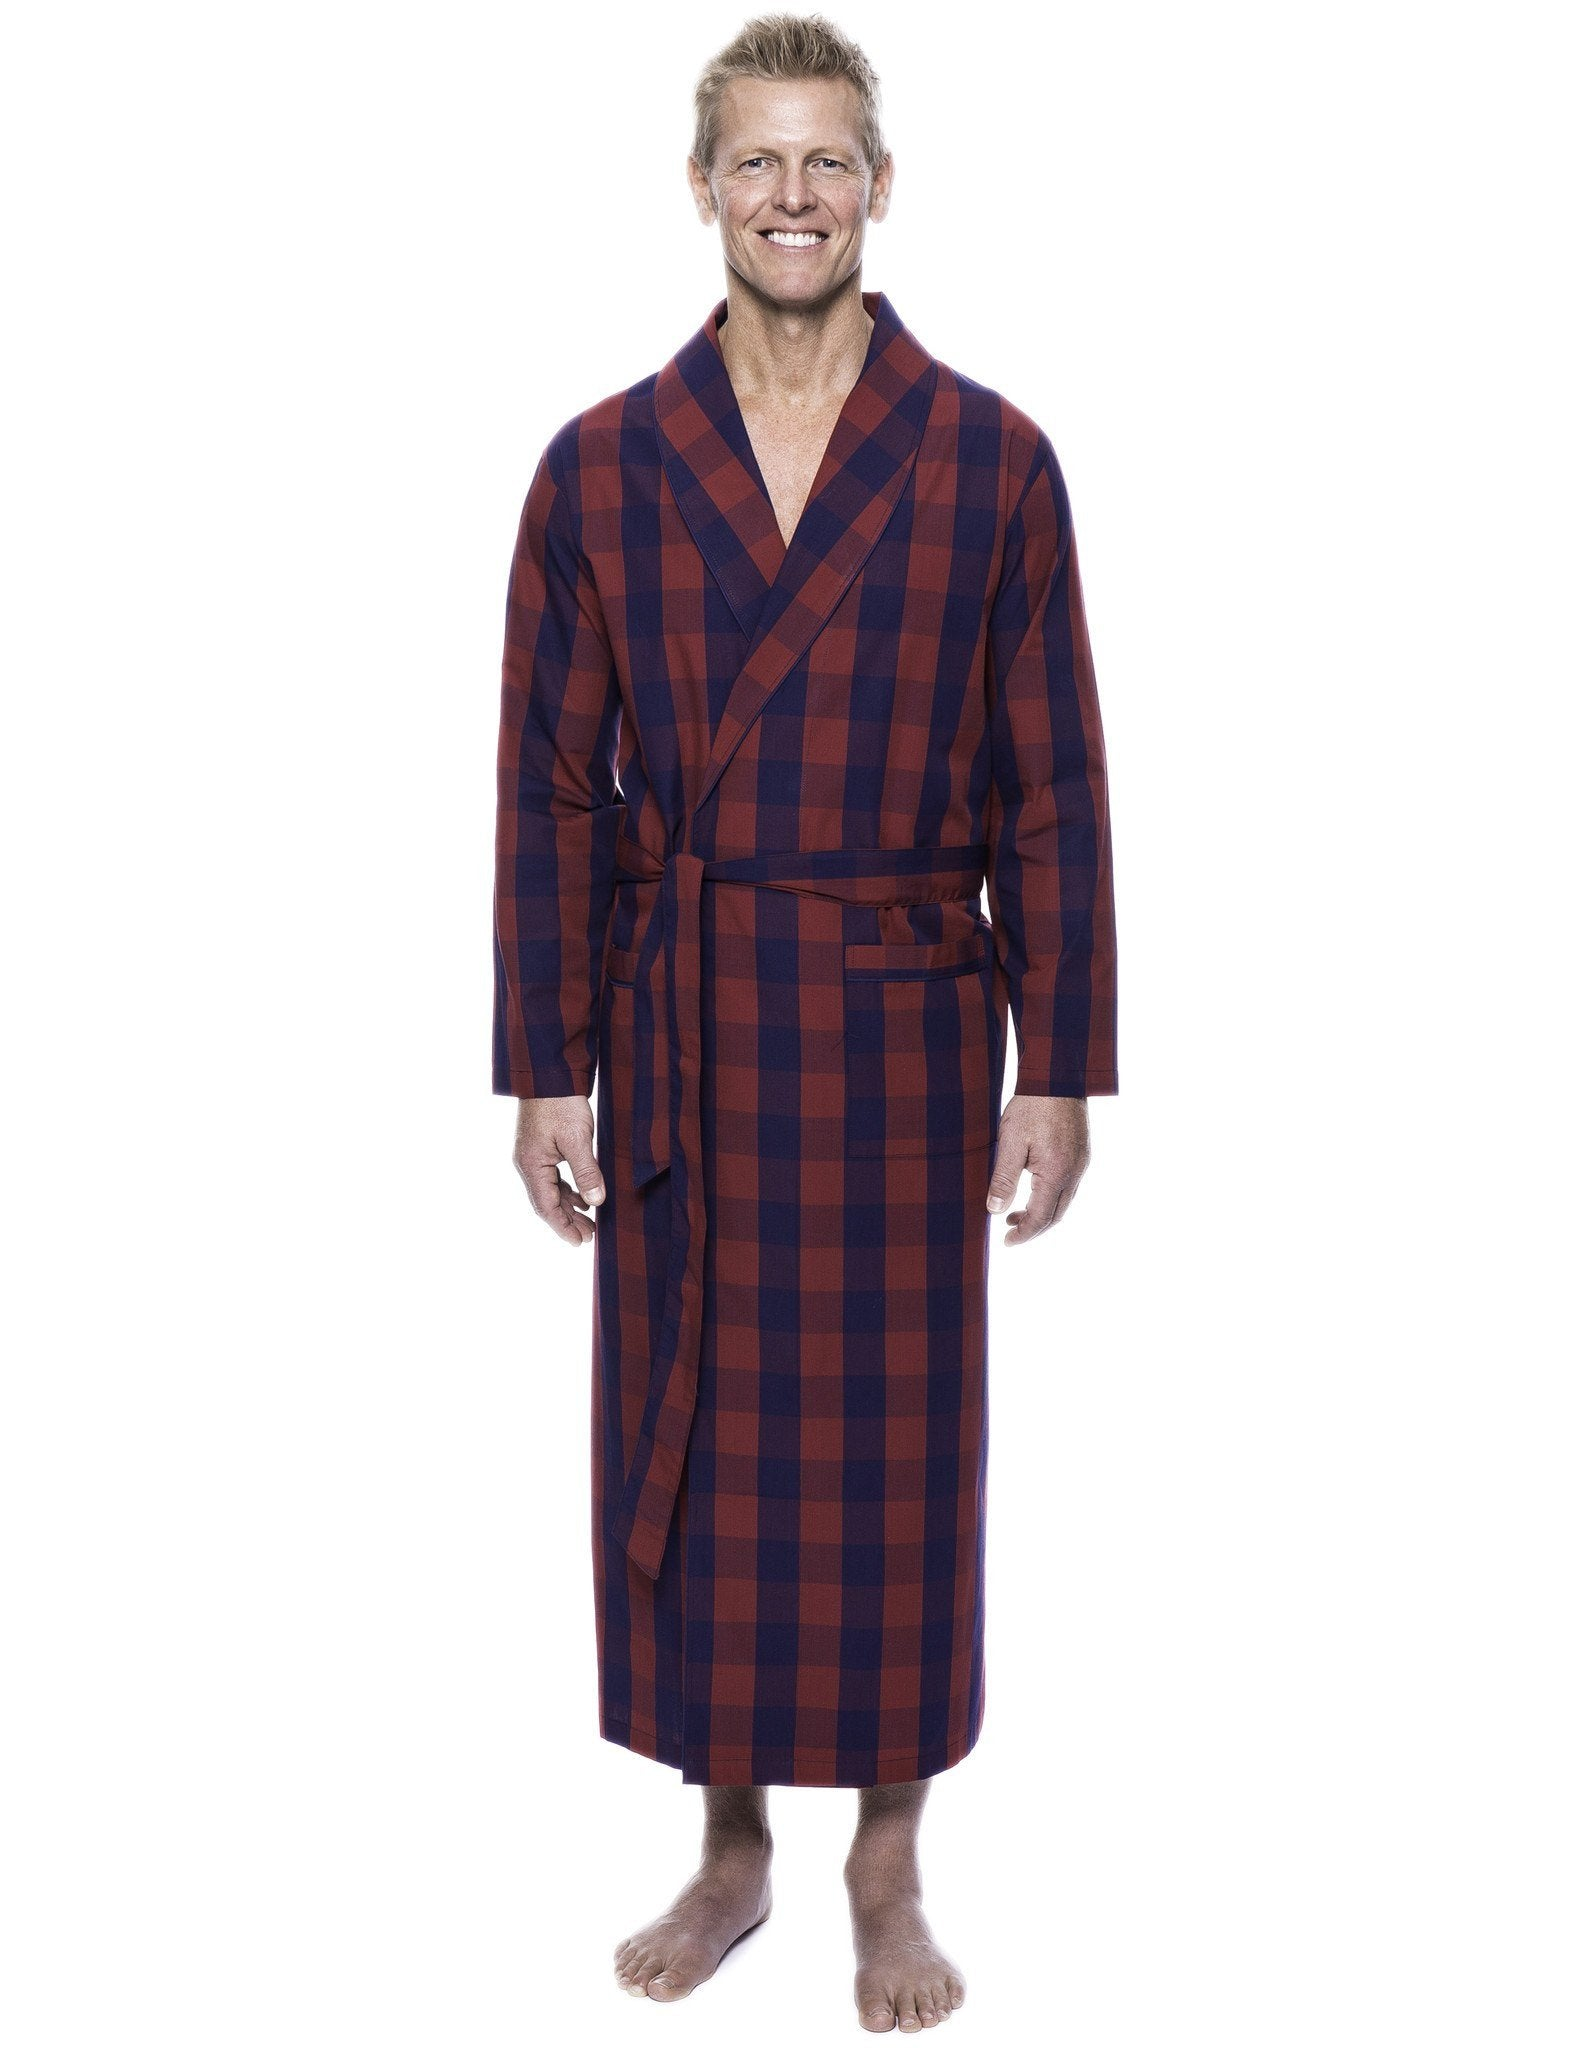 Men's 100% Woven Cotton Robe - Gingham Red/Navy